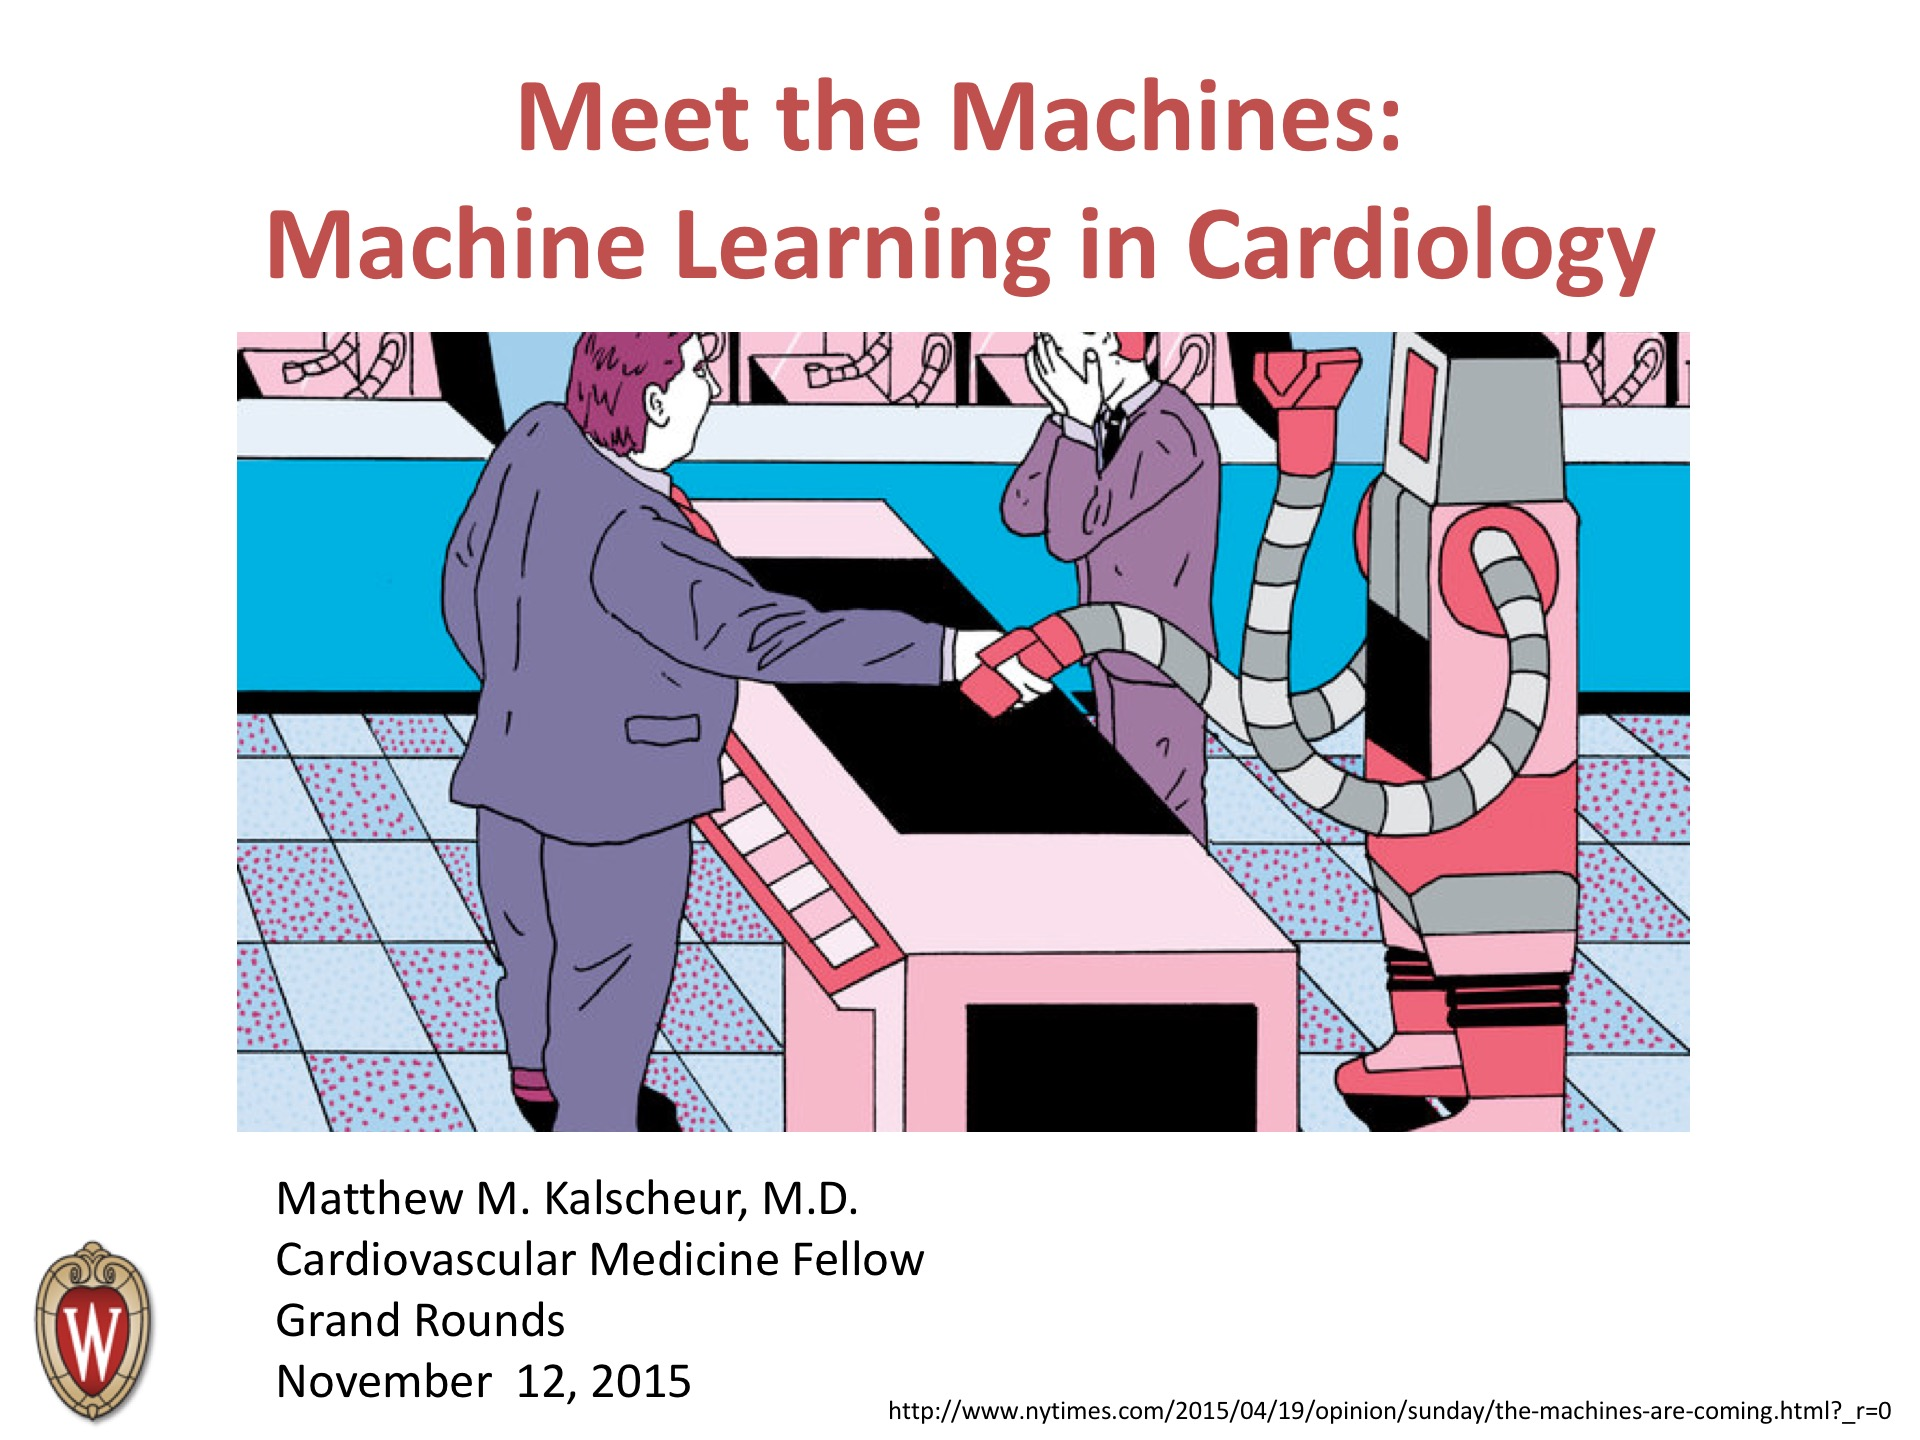 Picture from Meet the Machines: Machine Learning in Cardiology video